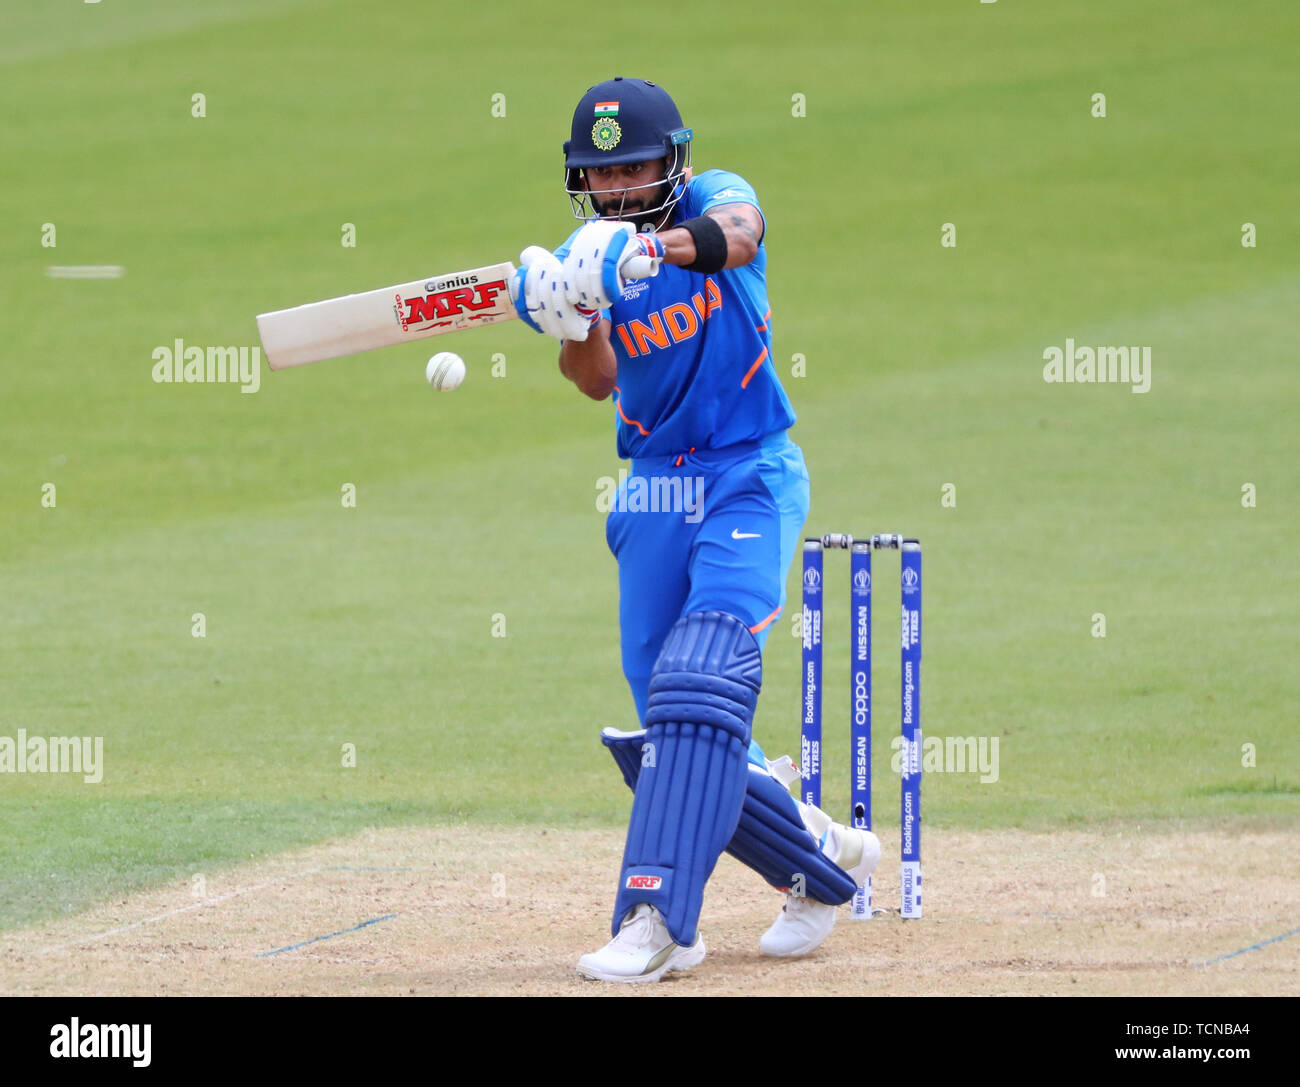 London, UK. 09th June, 2019. Virat Kohli of India batting during the ICC Cricket World Cup match between India and Australia, at The Kia Oval, London. Credit: Cal Sport Media/Alamy Live News Stock Photo